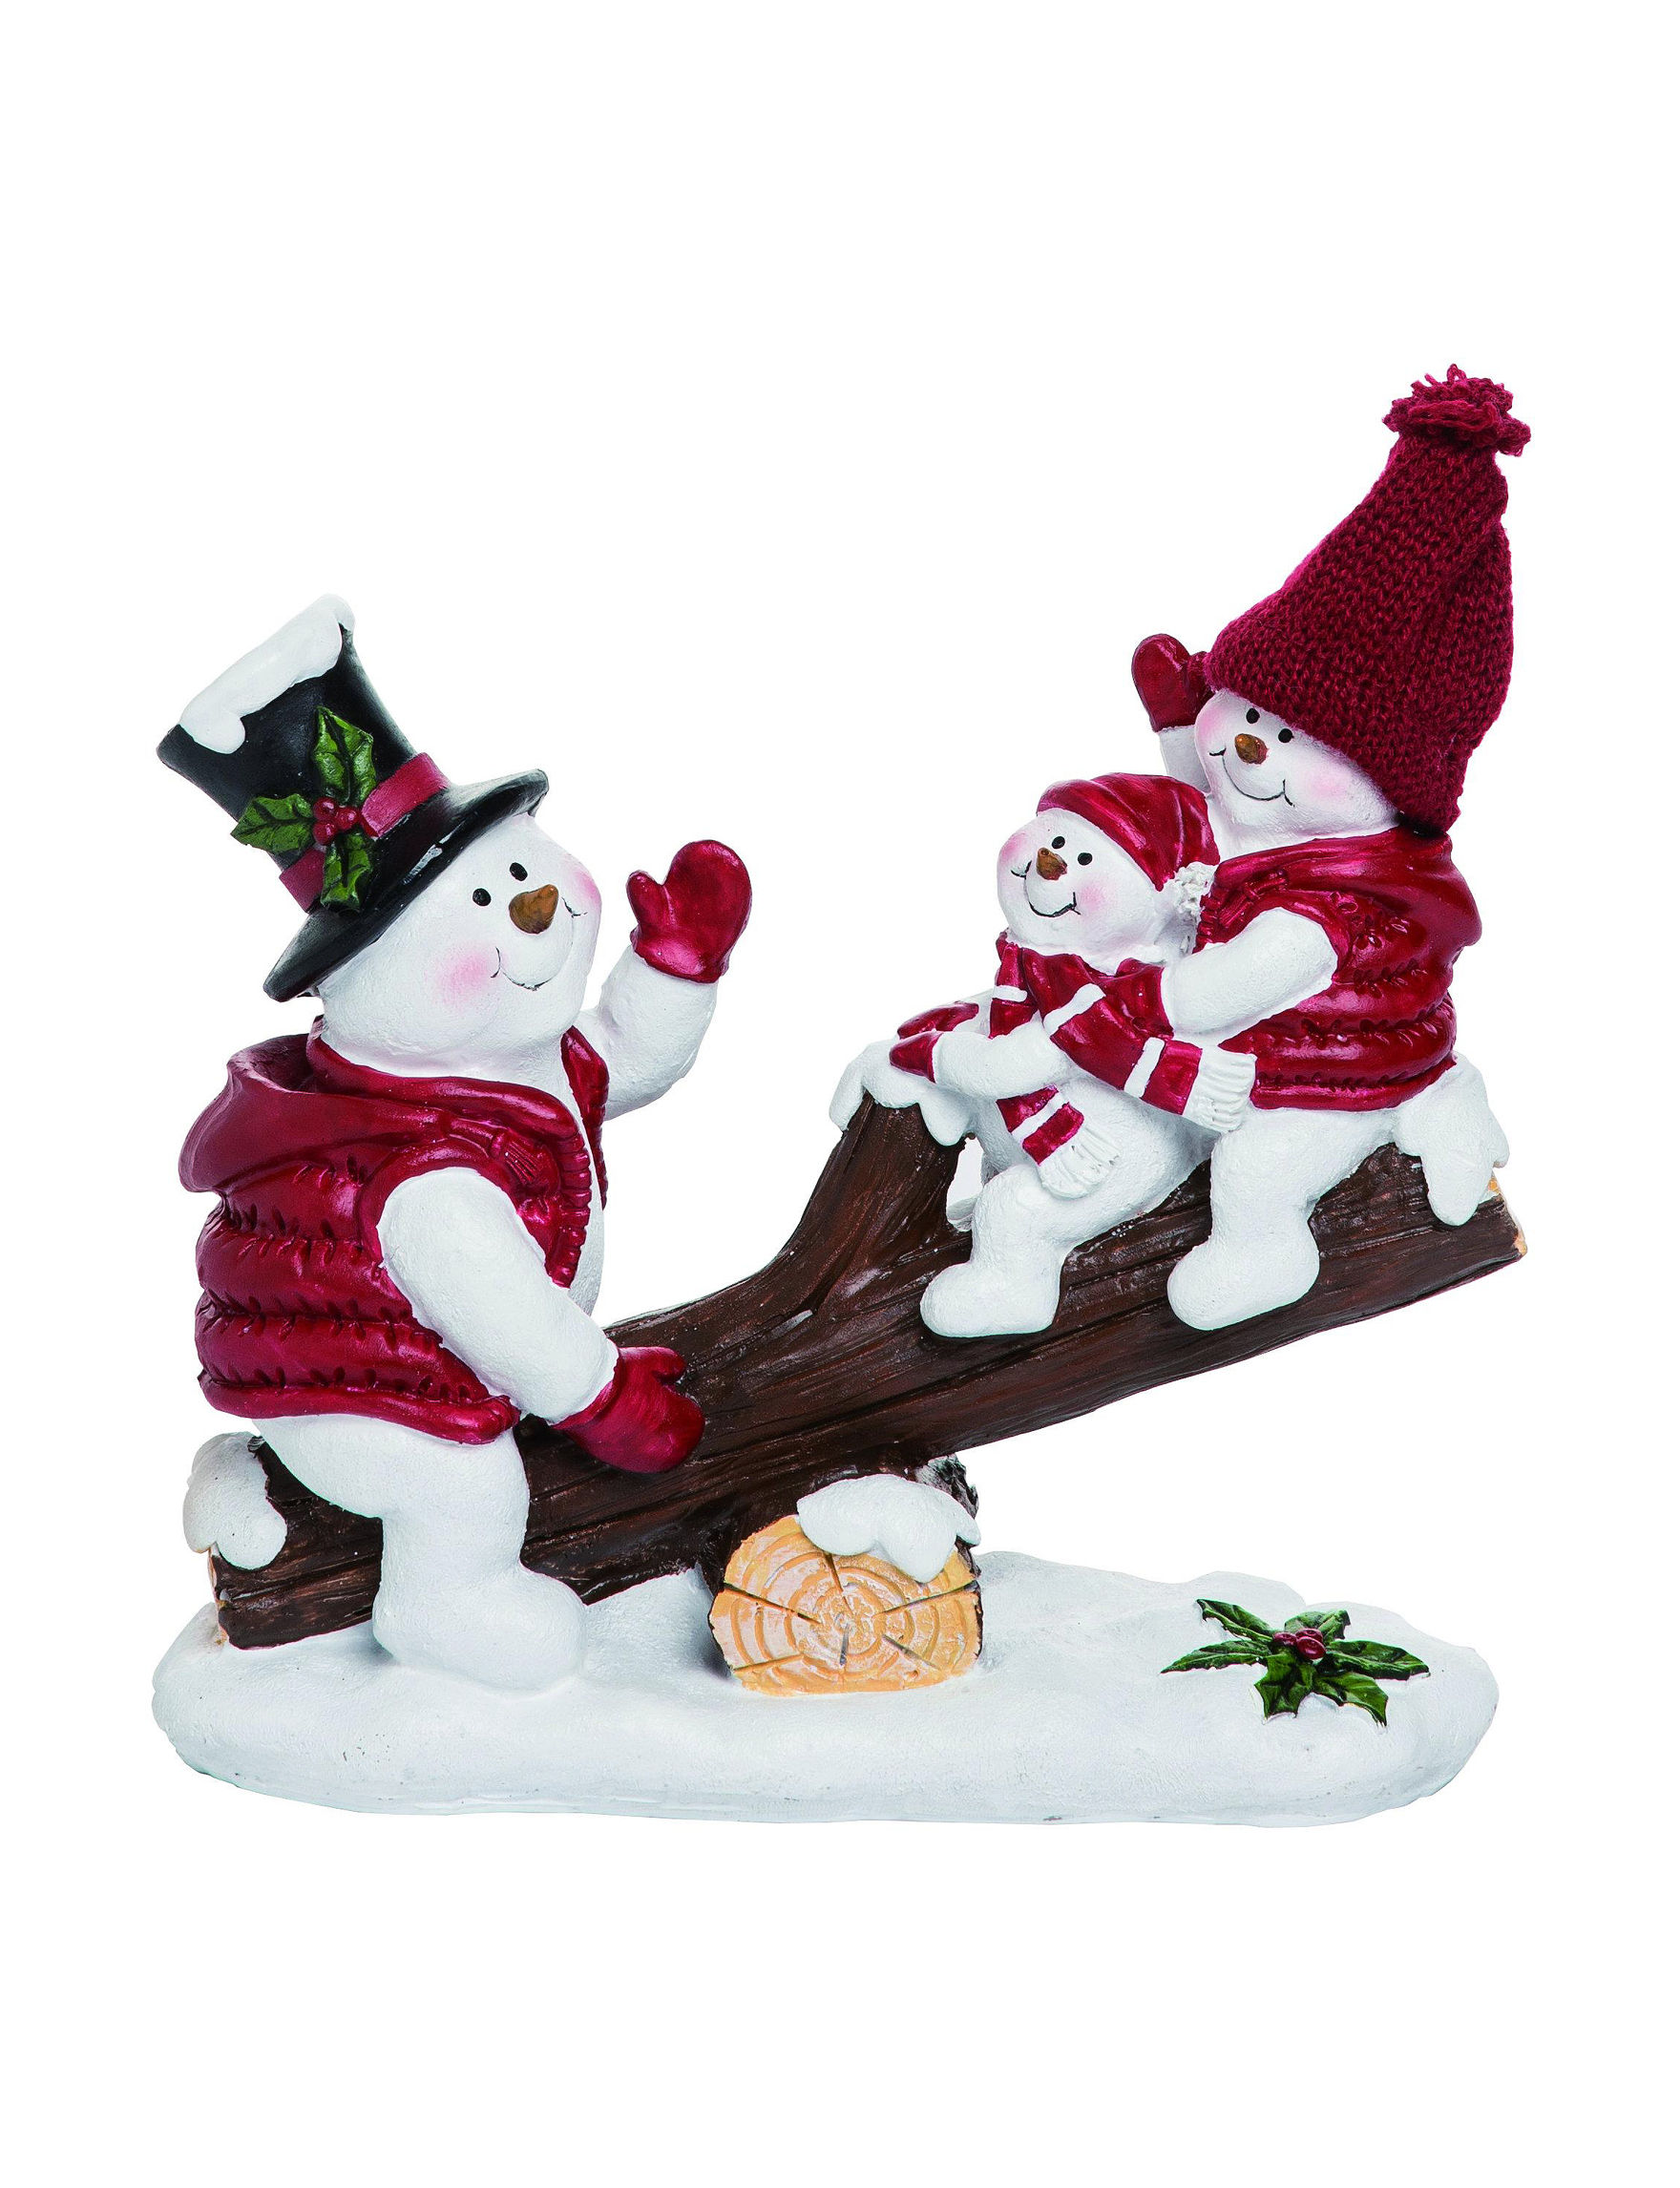 Transpac White / Red Decorative Objects Holiday Decor